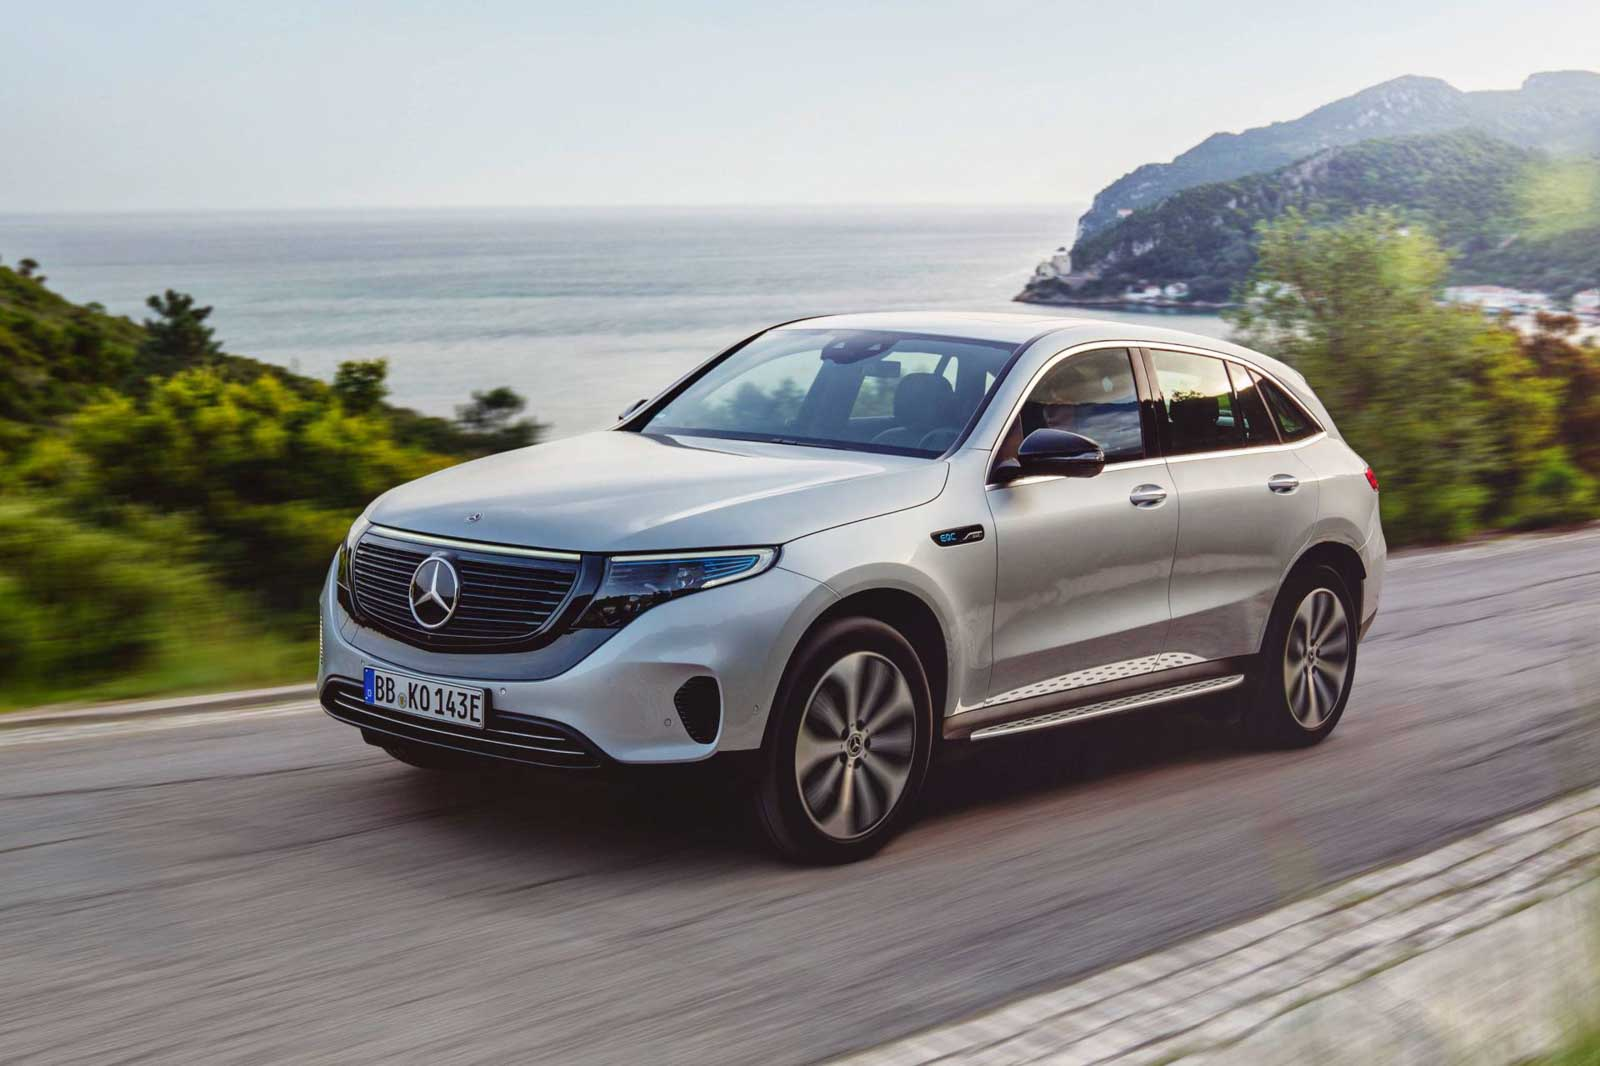 Mercedes-Benz EQC Electric SUV Launched In India At Rs. 99 ...